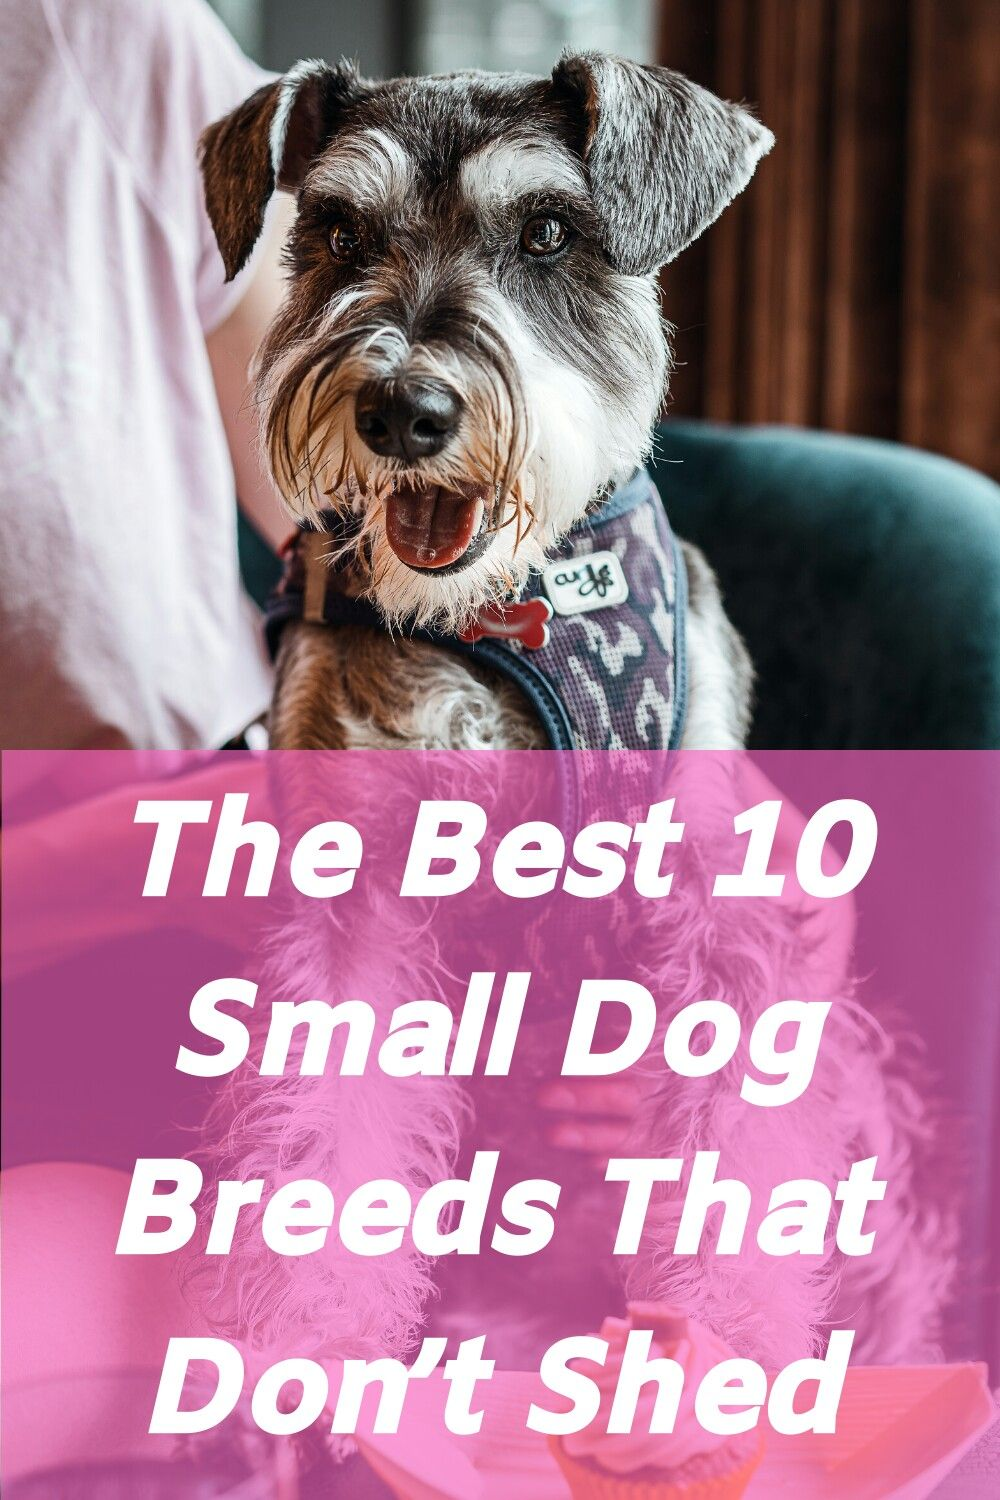 The Best 10 Small Dog Breeds That Dont Shed In 2020 Small Dog Breeds Dog Breeds That Dont Shed Best Small Dogs